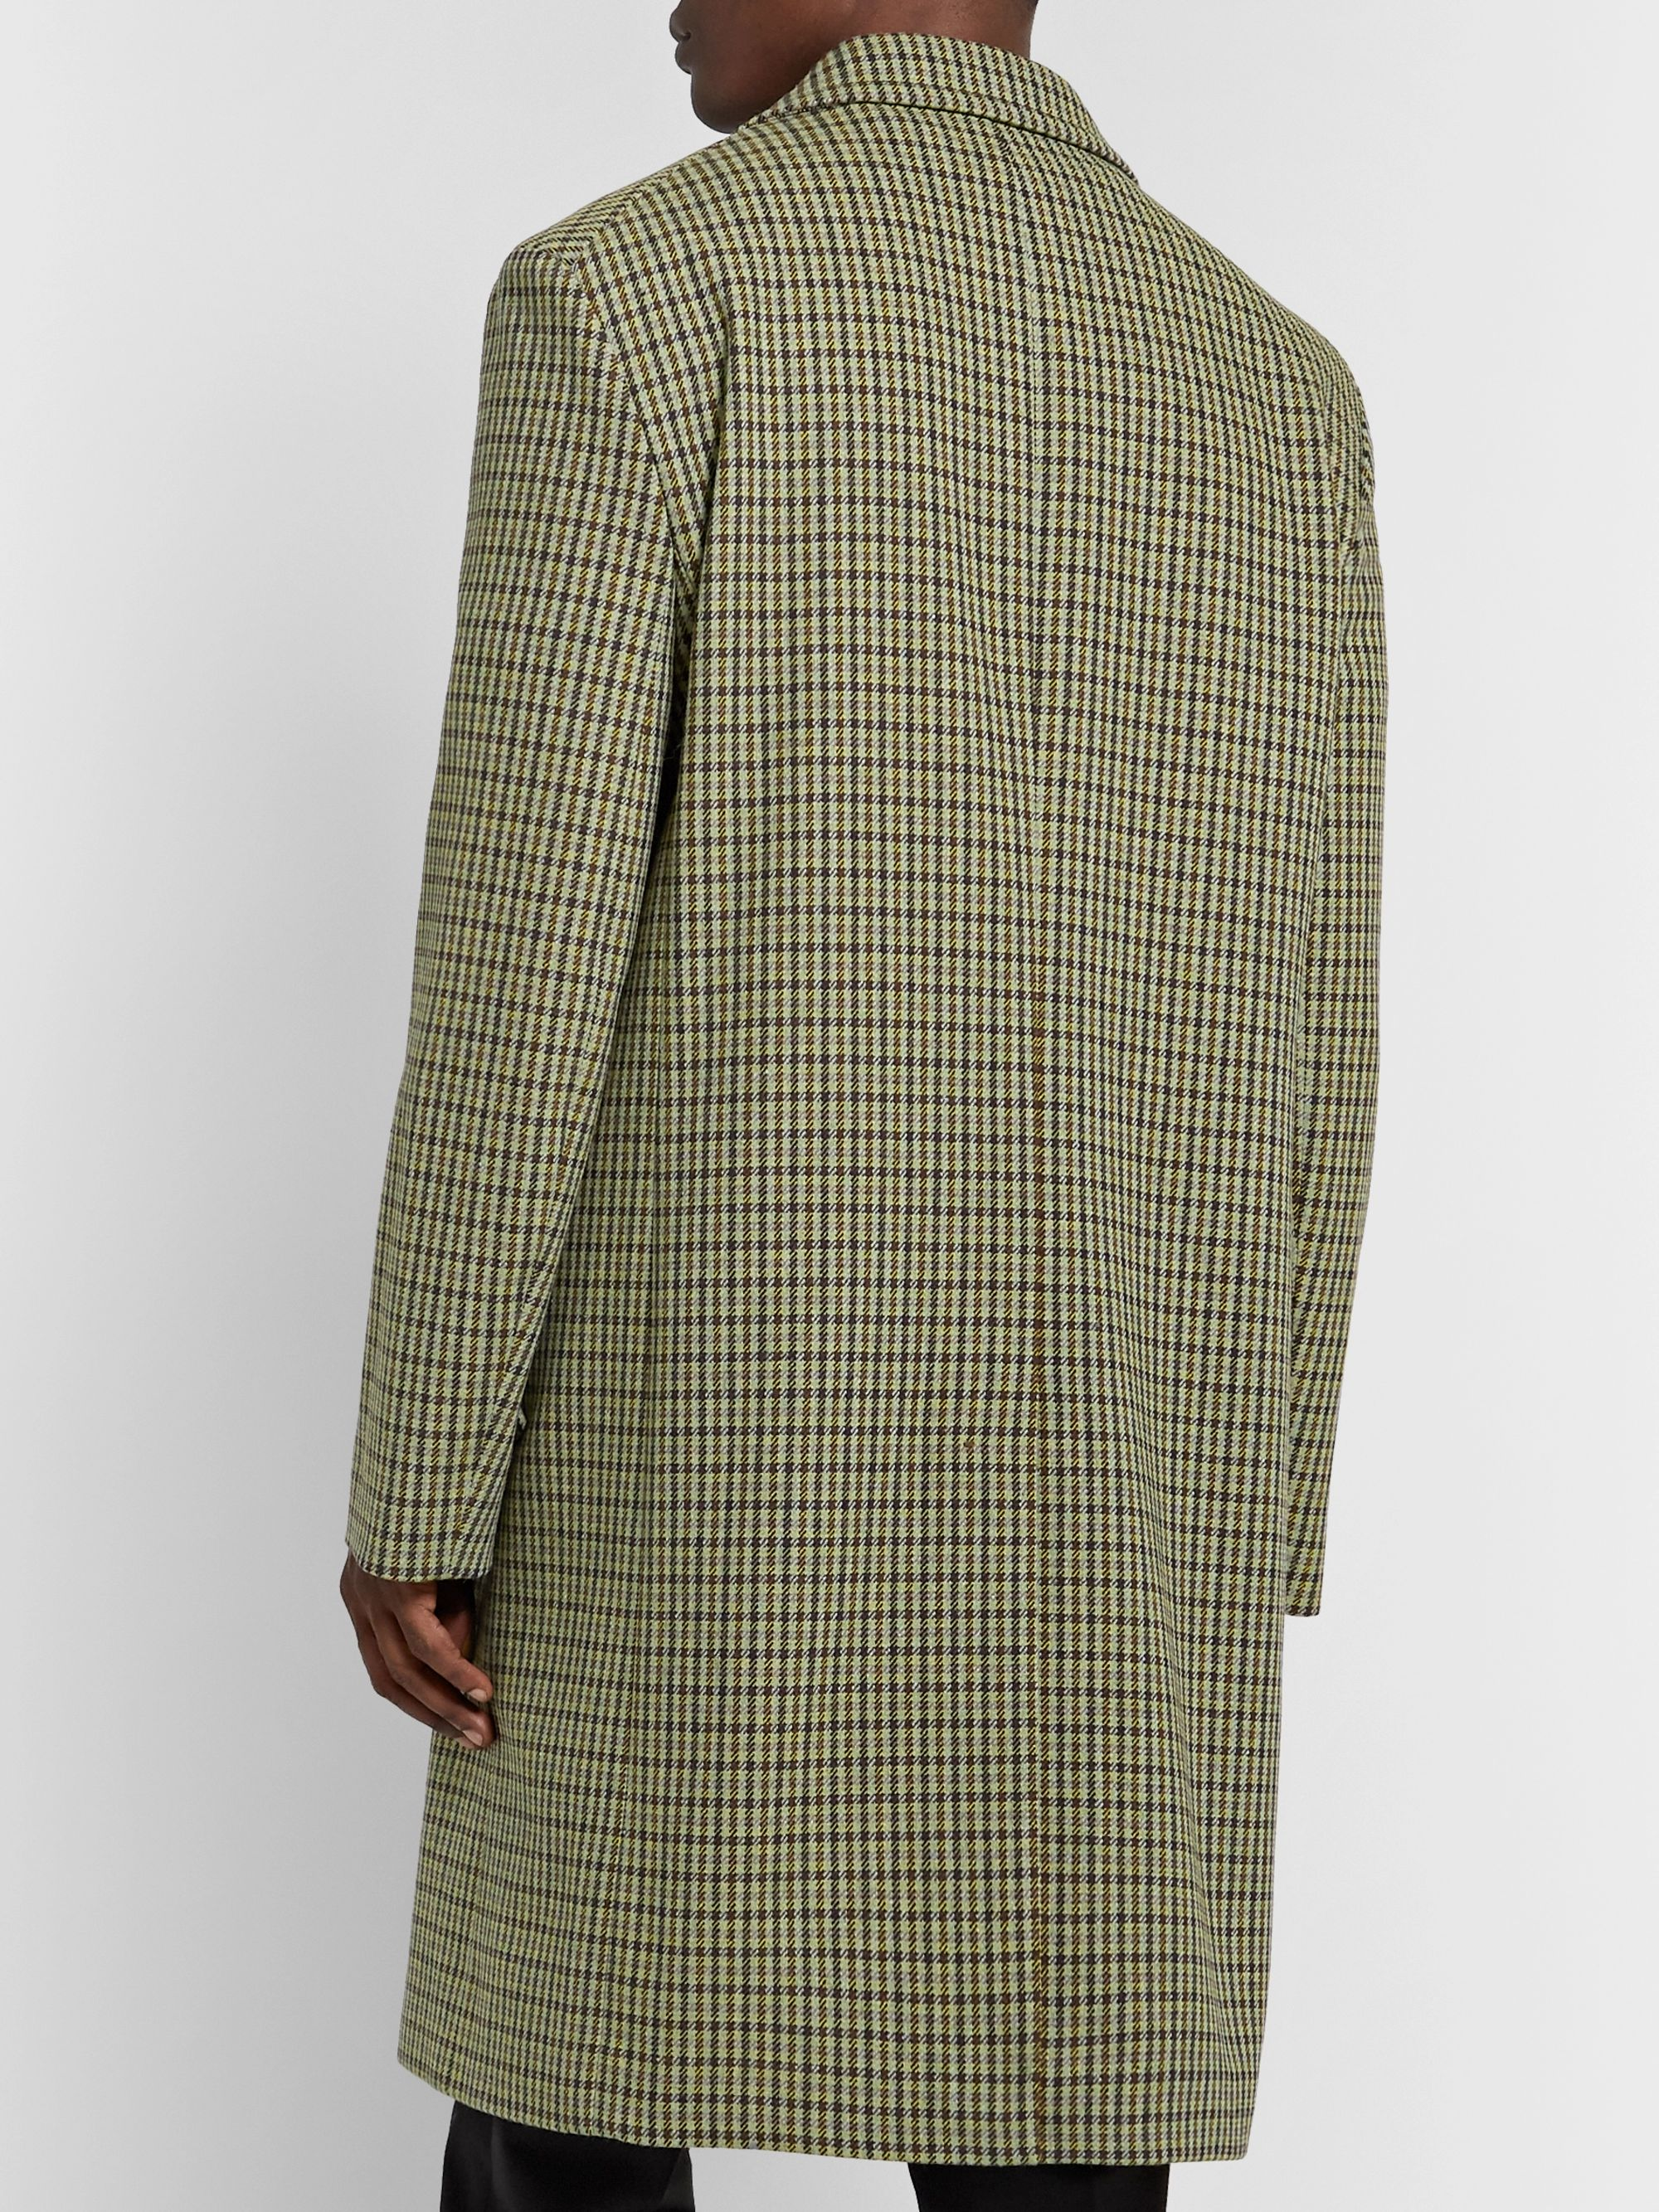 Acne Studios Vichy Houndstooth Wool-Blend Tweed Overcoat